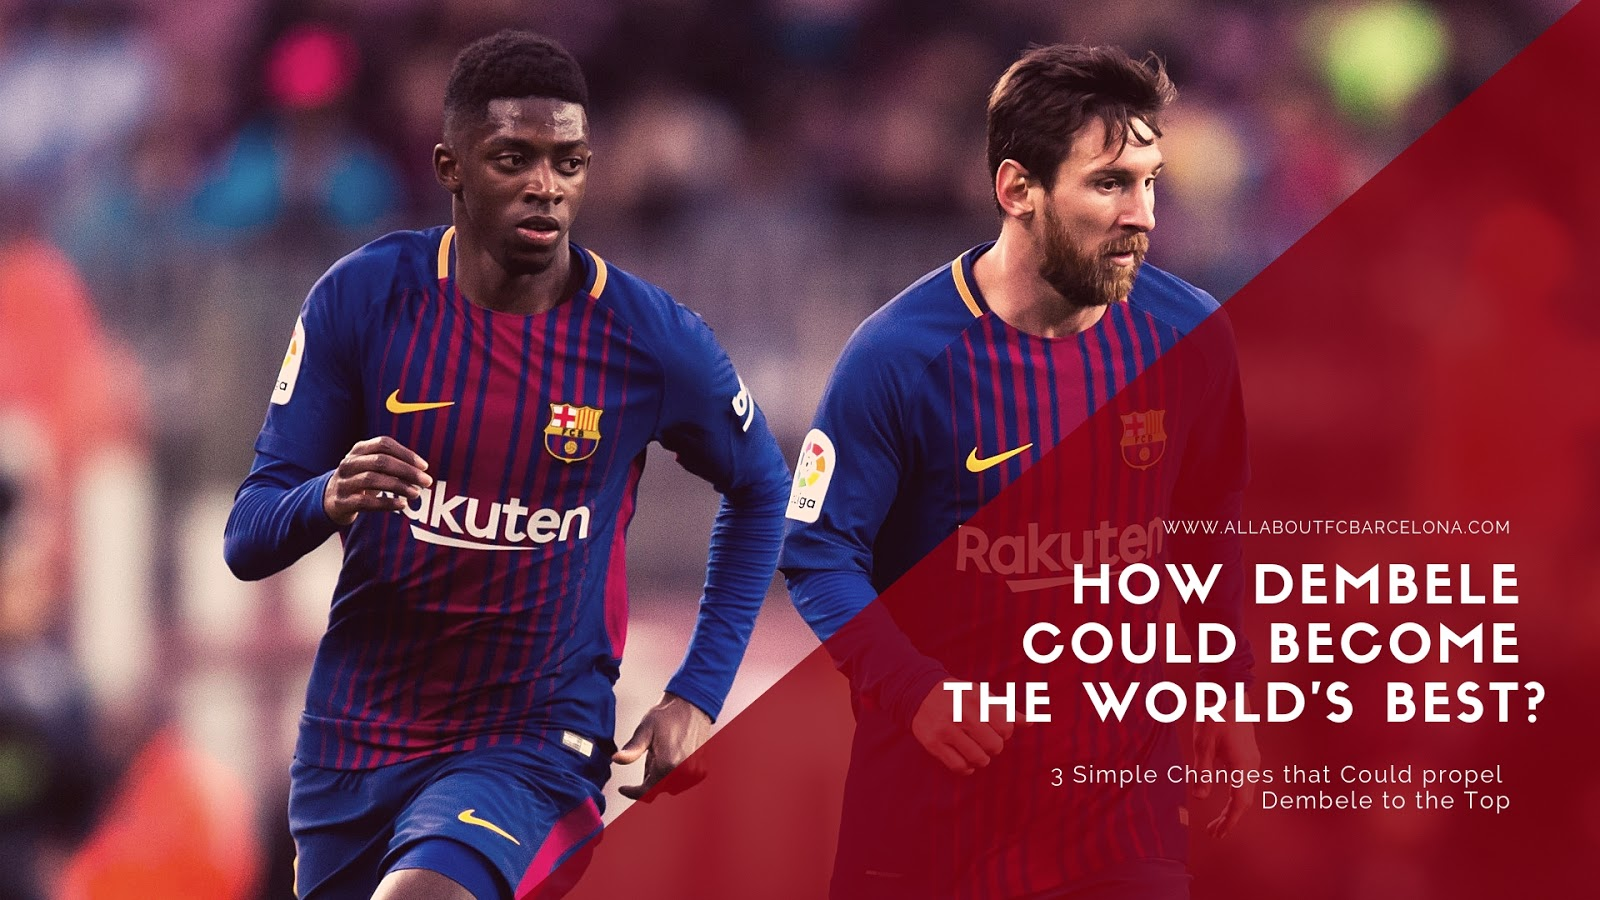 These 3 Simple Changes could Make Dembele be one of the Best!